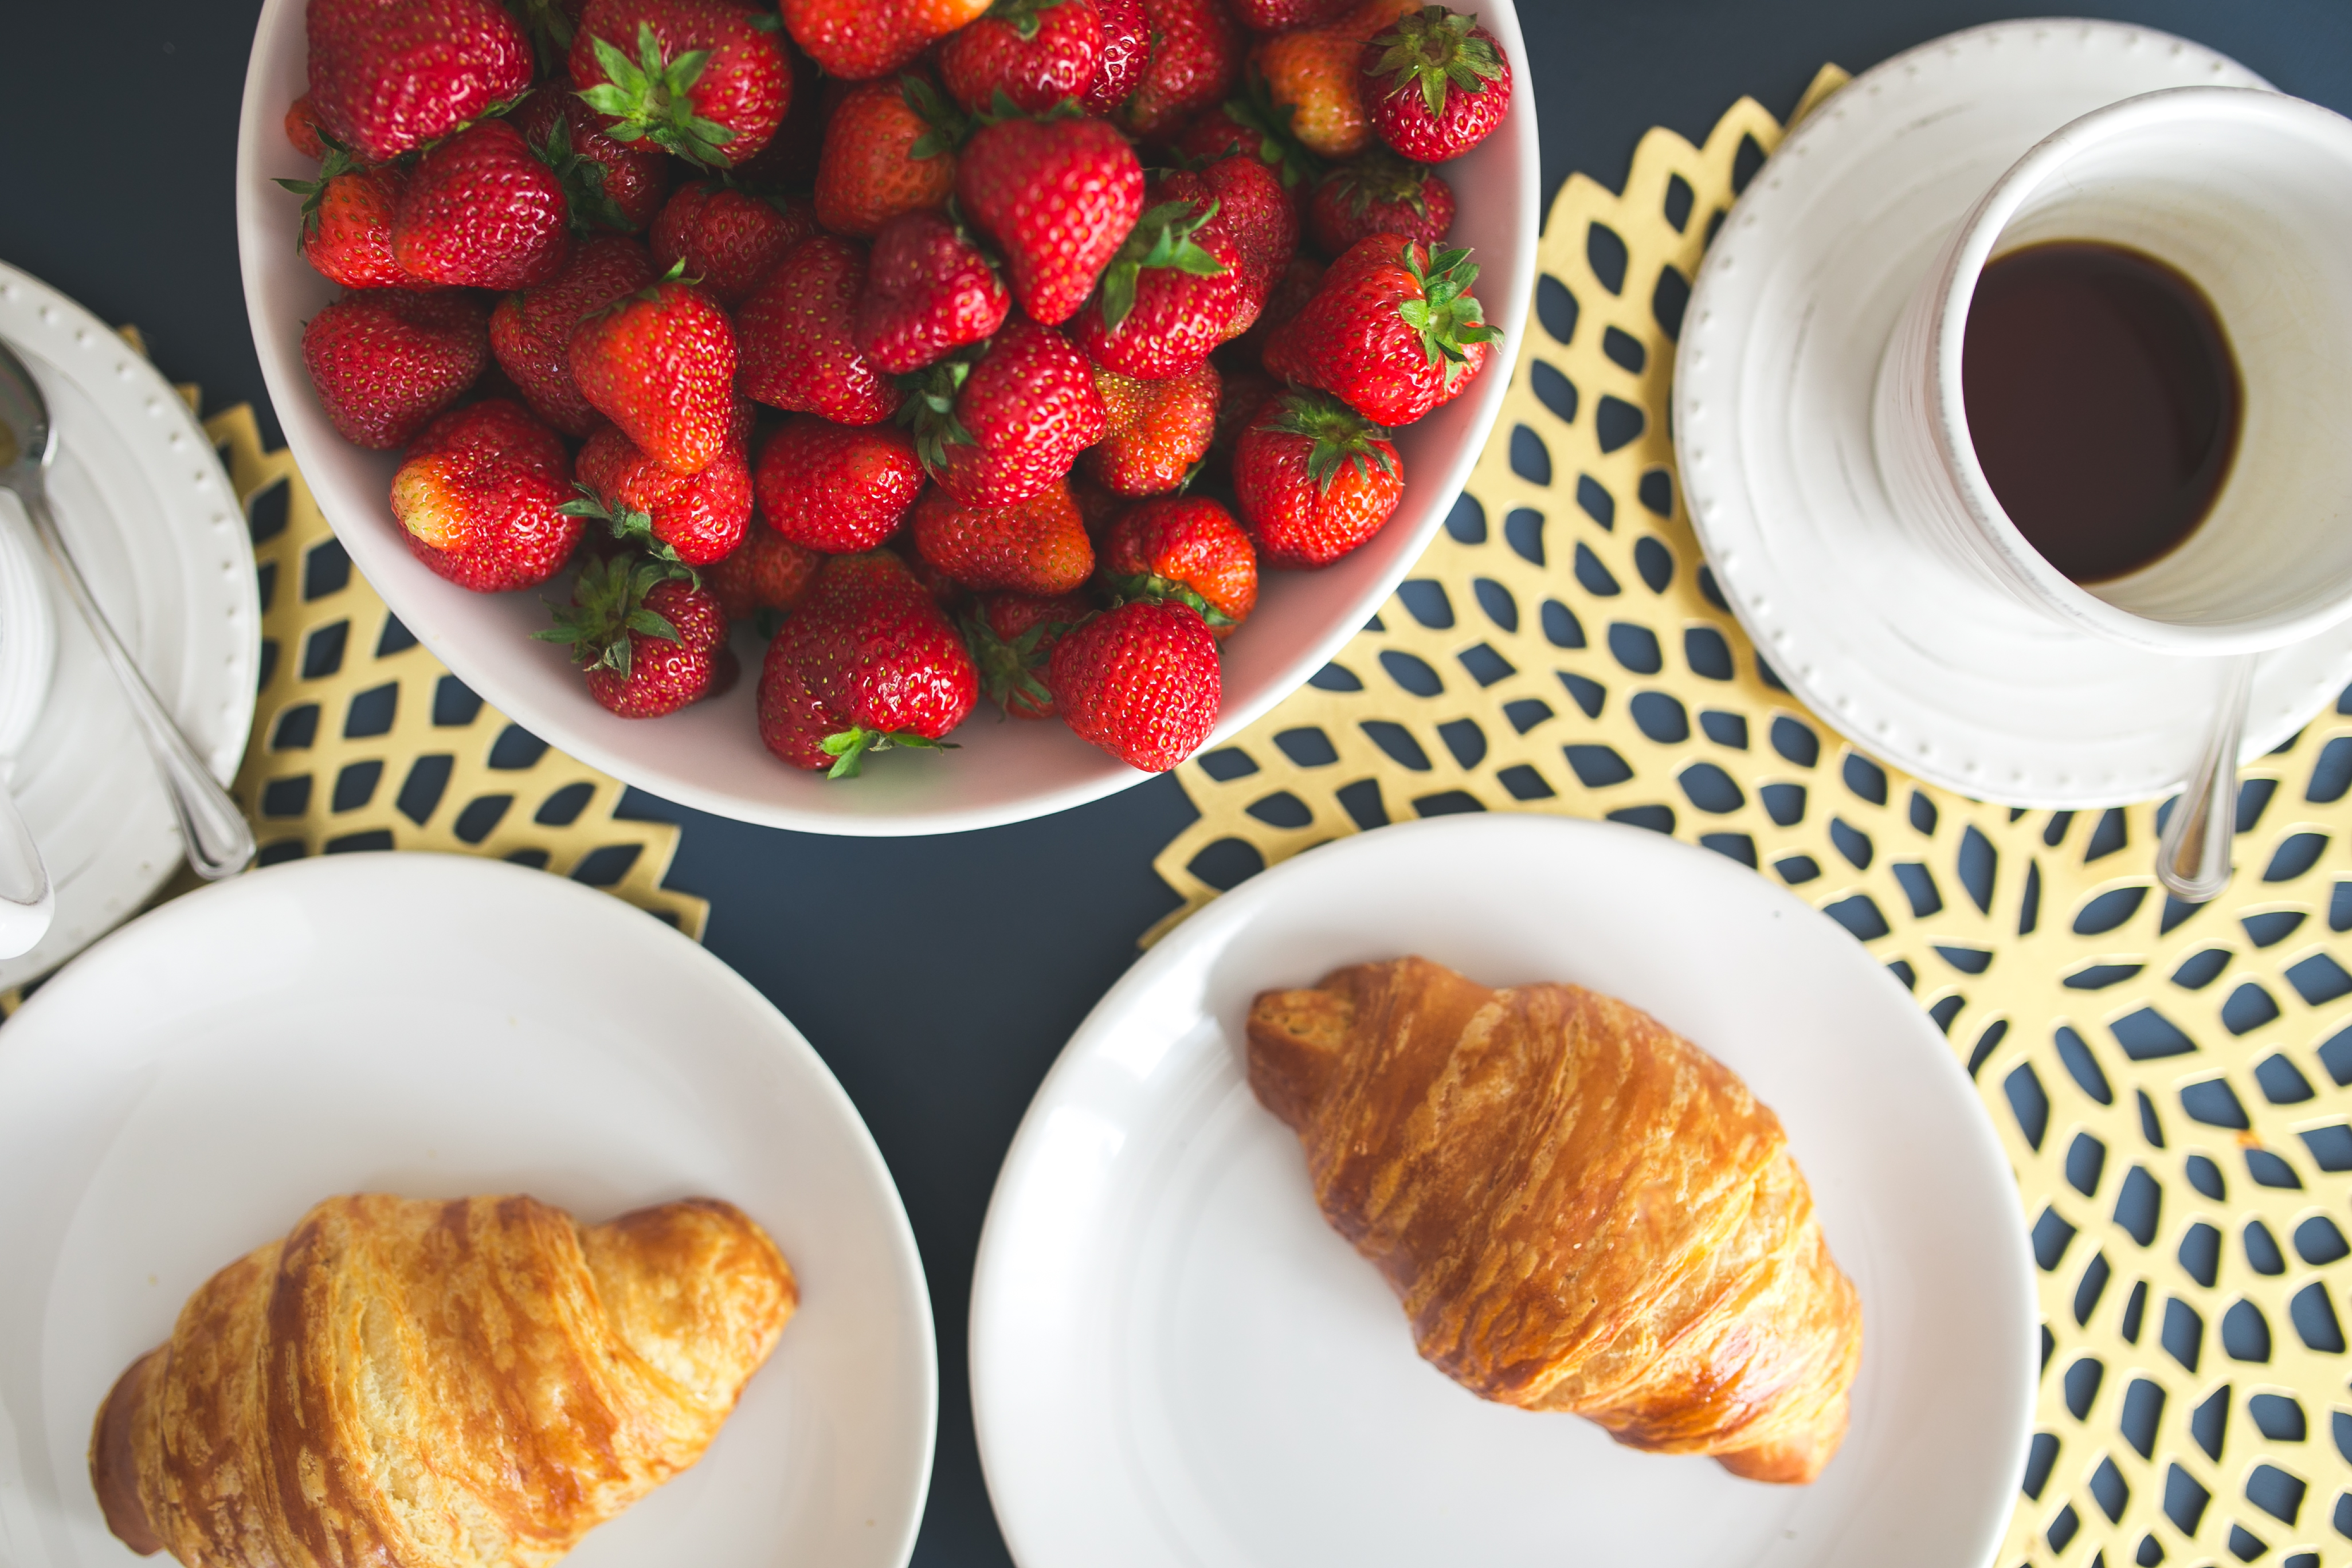 Strawberries and Croissants